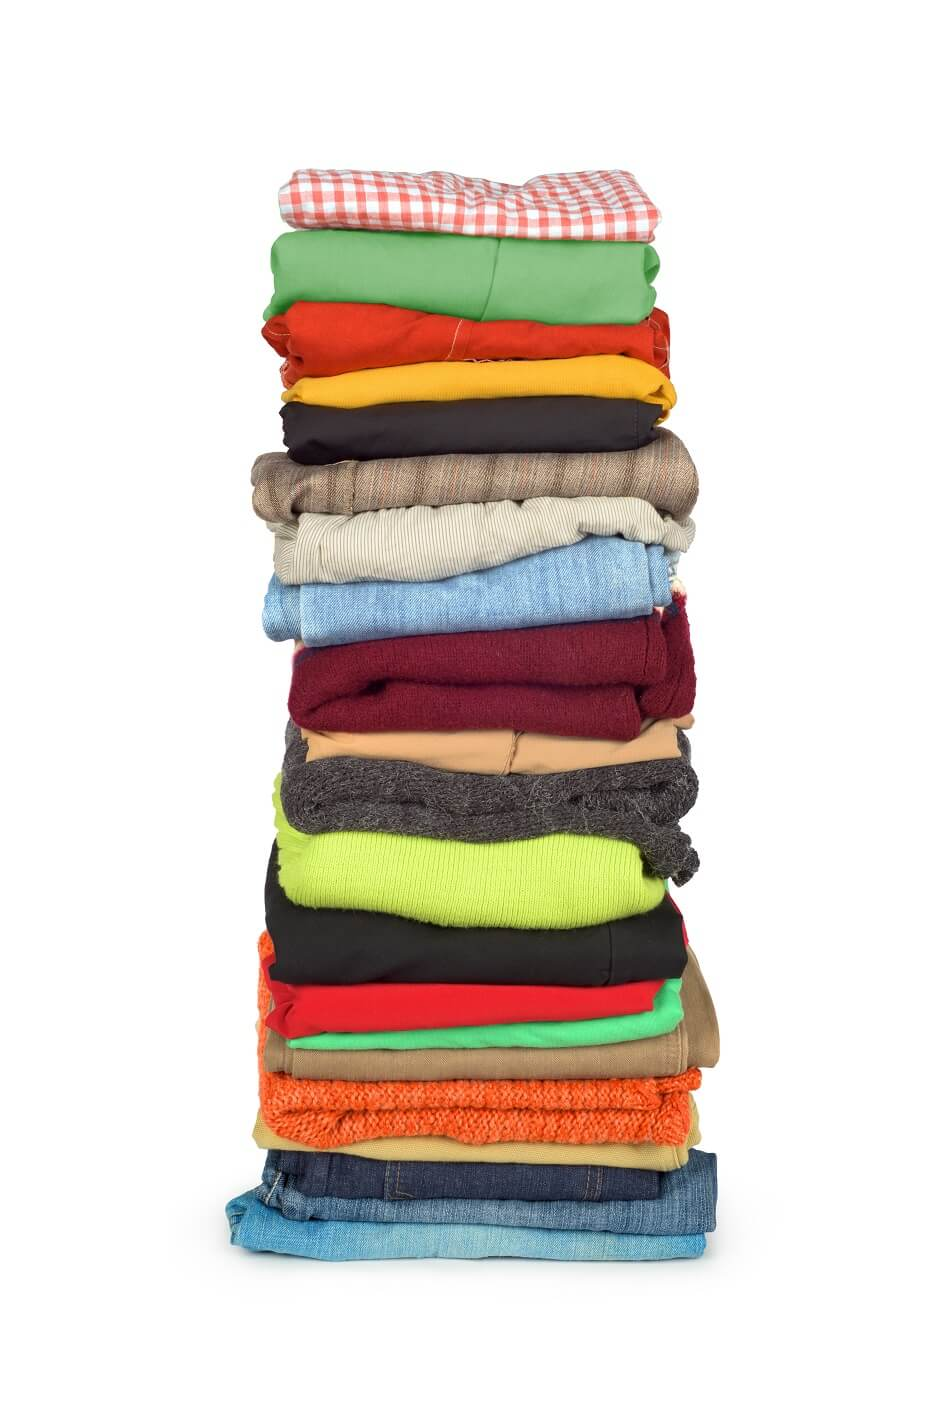 stack of clothing that needs to be decluttered